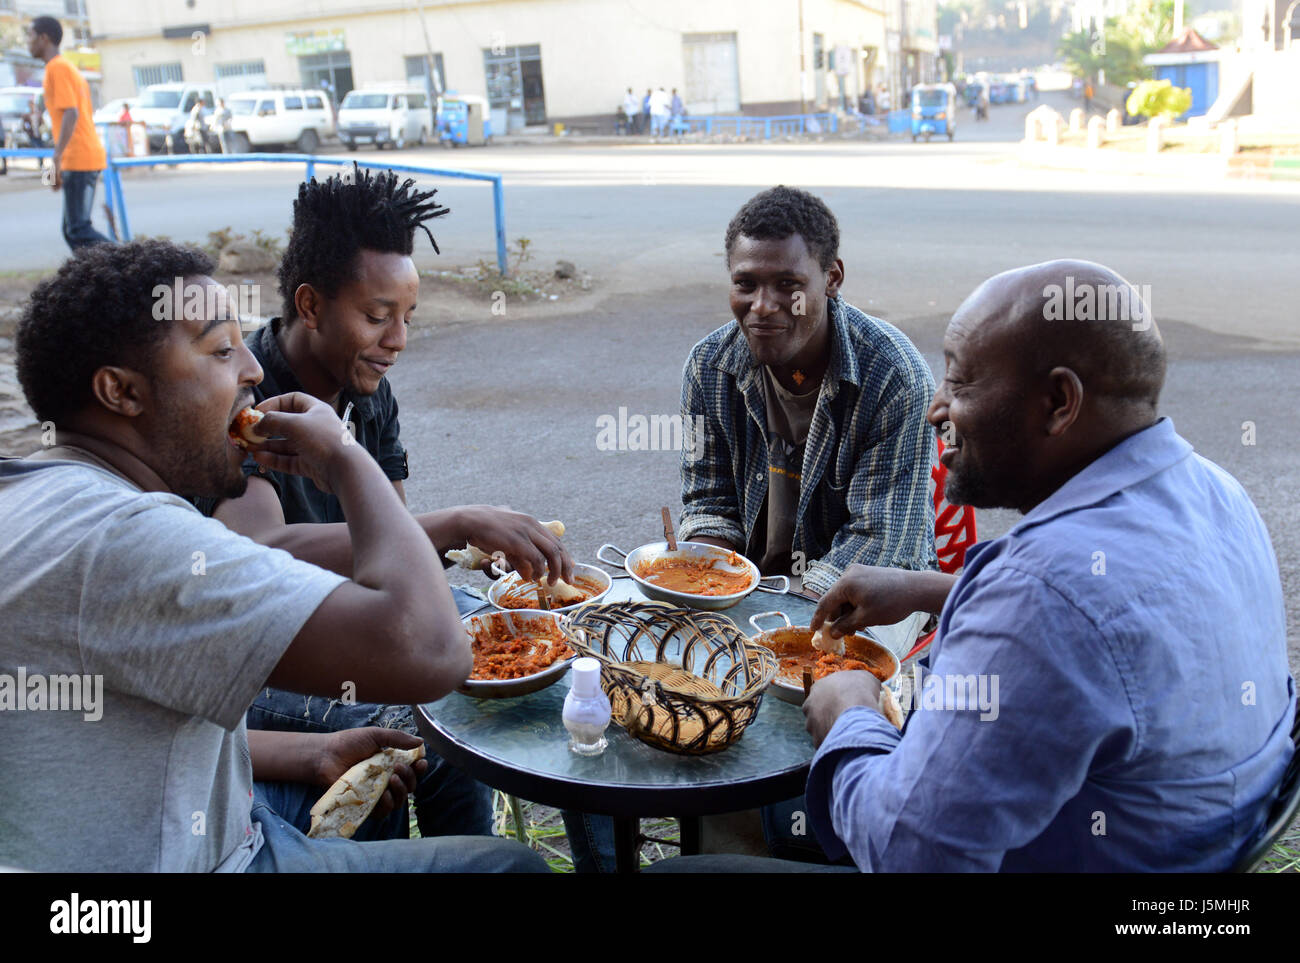 Ethiopian friends enjoying a Foul meal in the center of Gondar, Ethiopia. - Stock Image